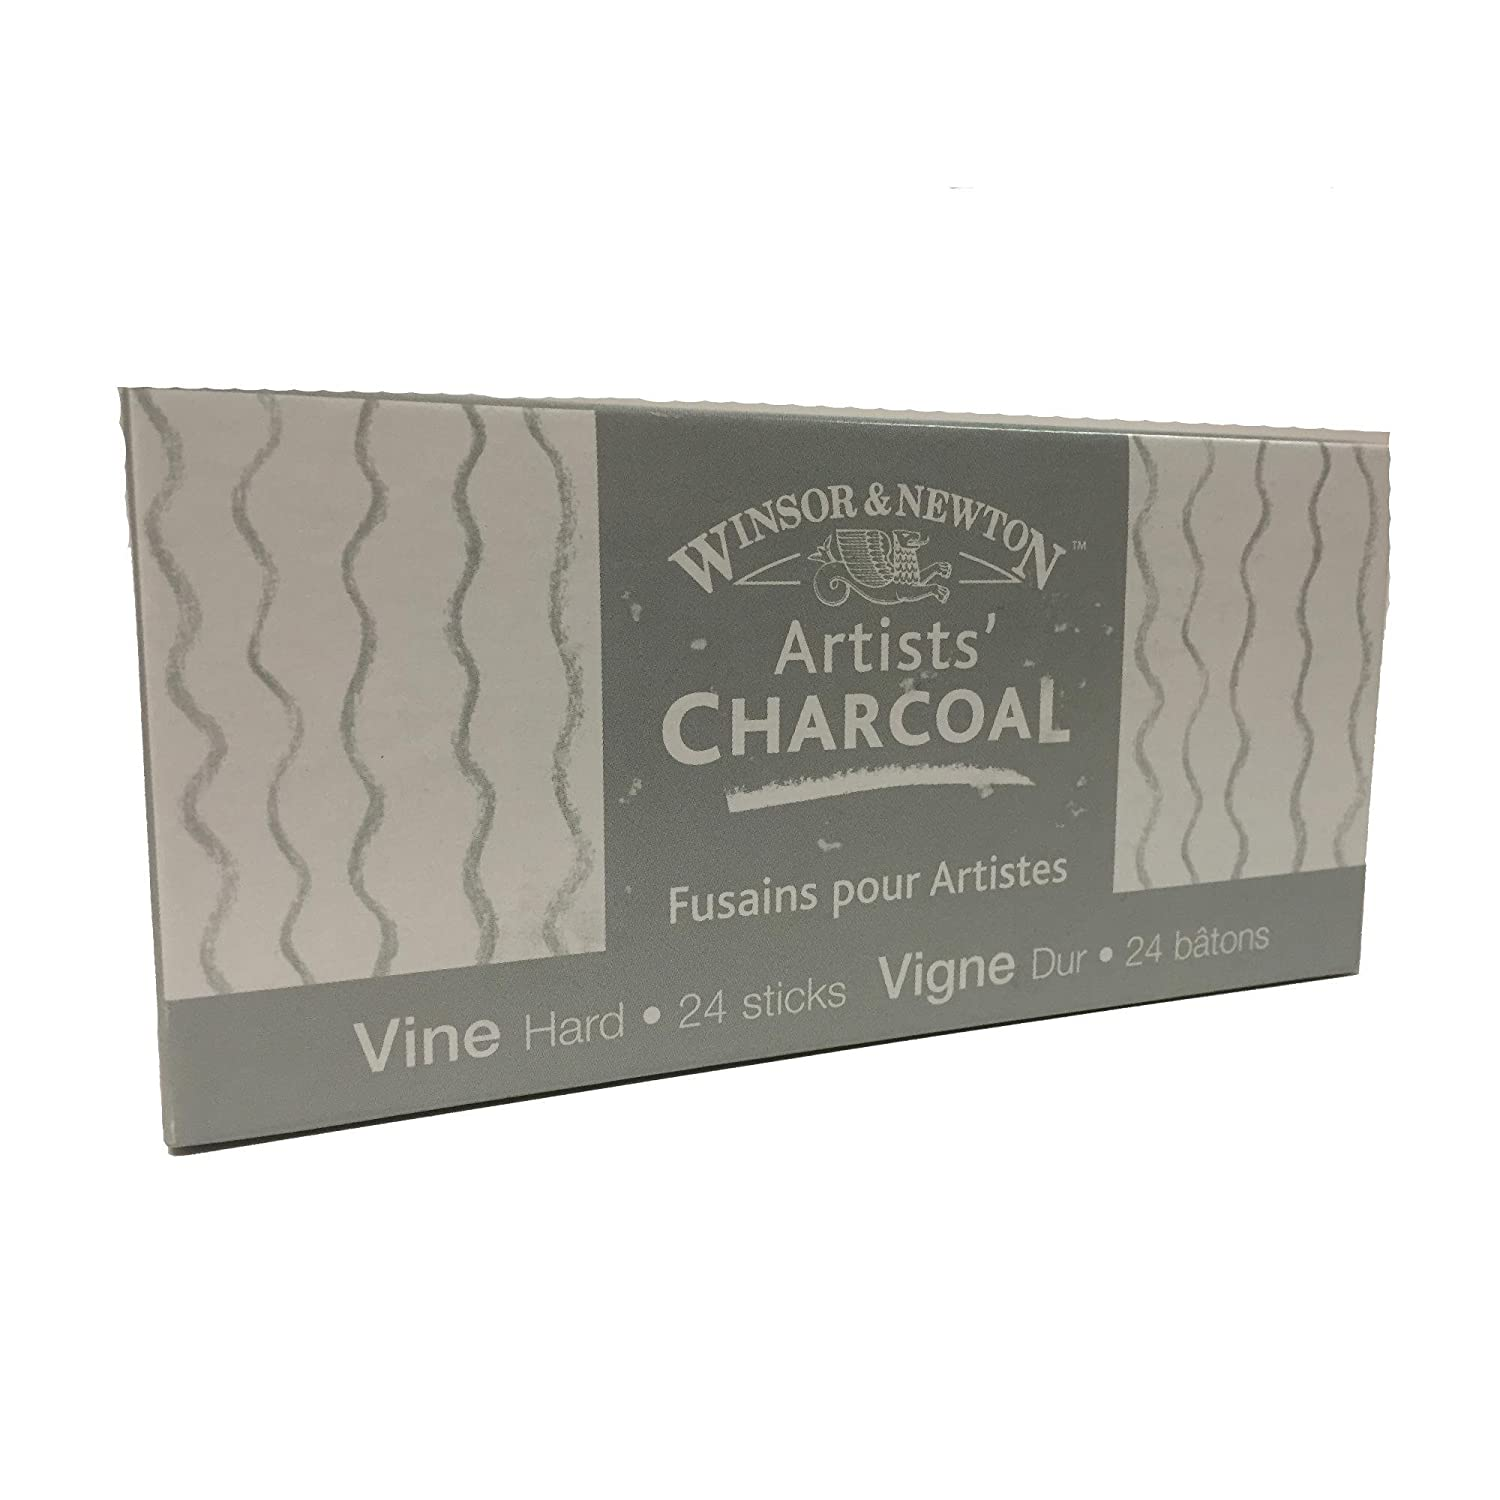 Winsor & Newton 8206002 Artists' Vine Charcoal Soft (Box of 24 Sticks)